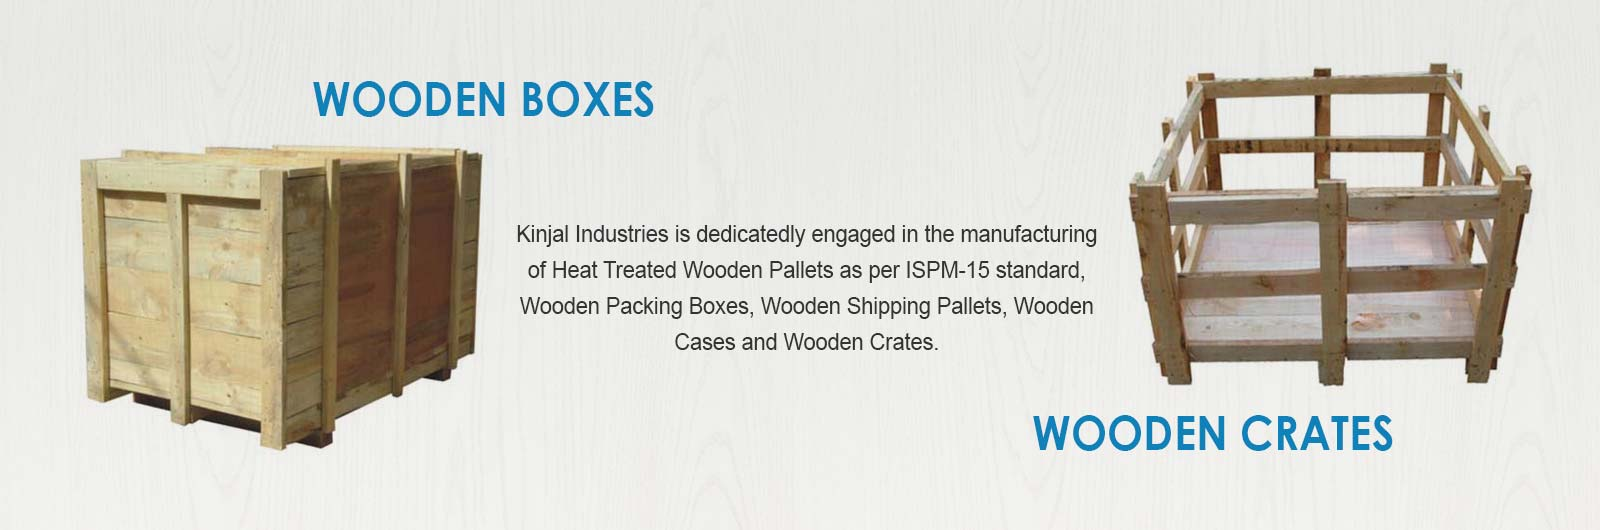 Wooden Boxes, Wooden Crates Manufacturers in Vadodara